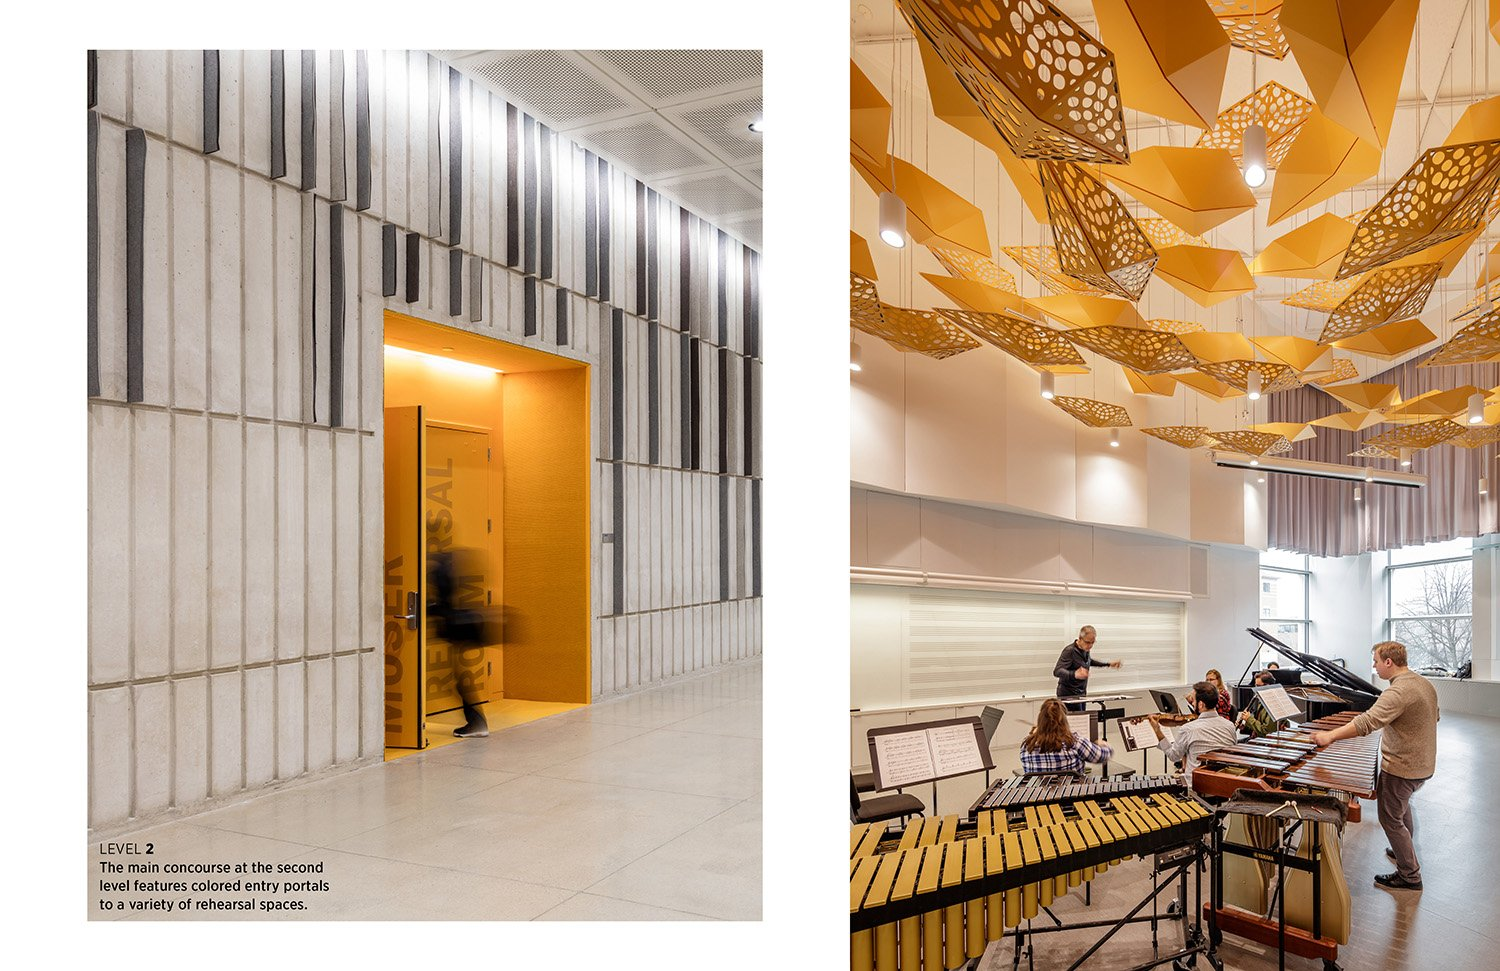 The main concourse at the second level features colored entry portals to a variety of rehearsal spaces. Tim Griffith}